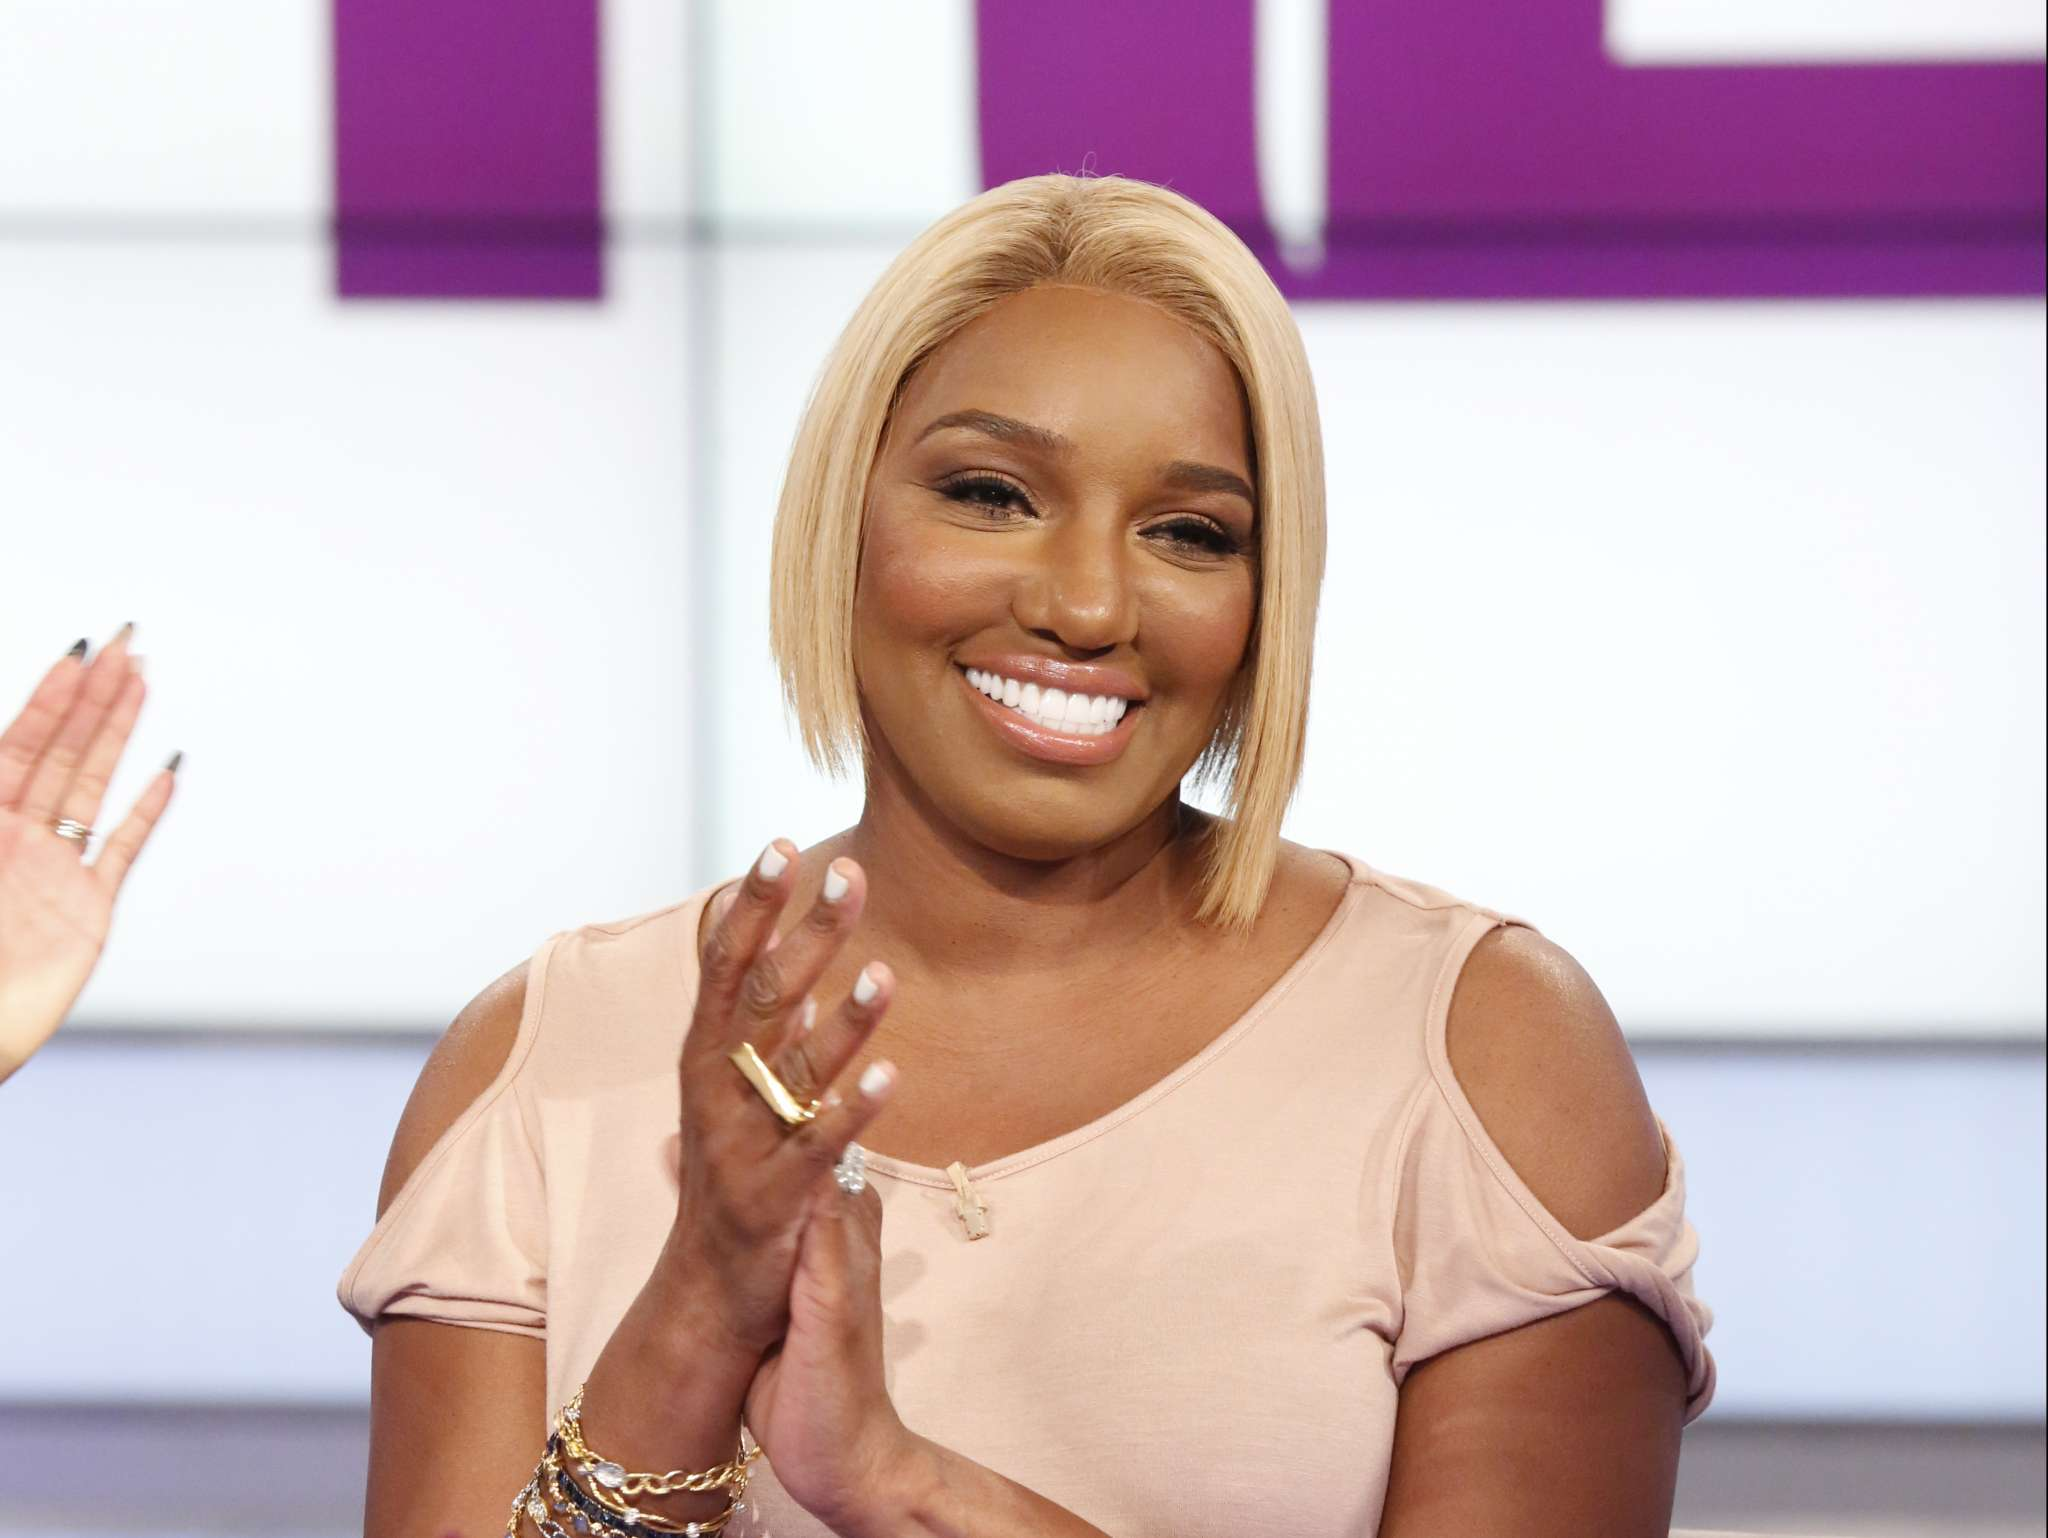 NeNe Leakes' Fans Are Glad To See Her In High Spirits - Check Out Her Latest Pics